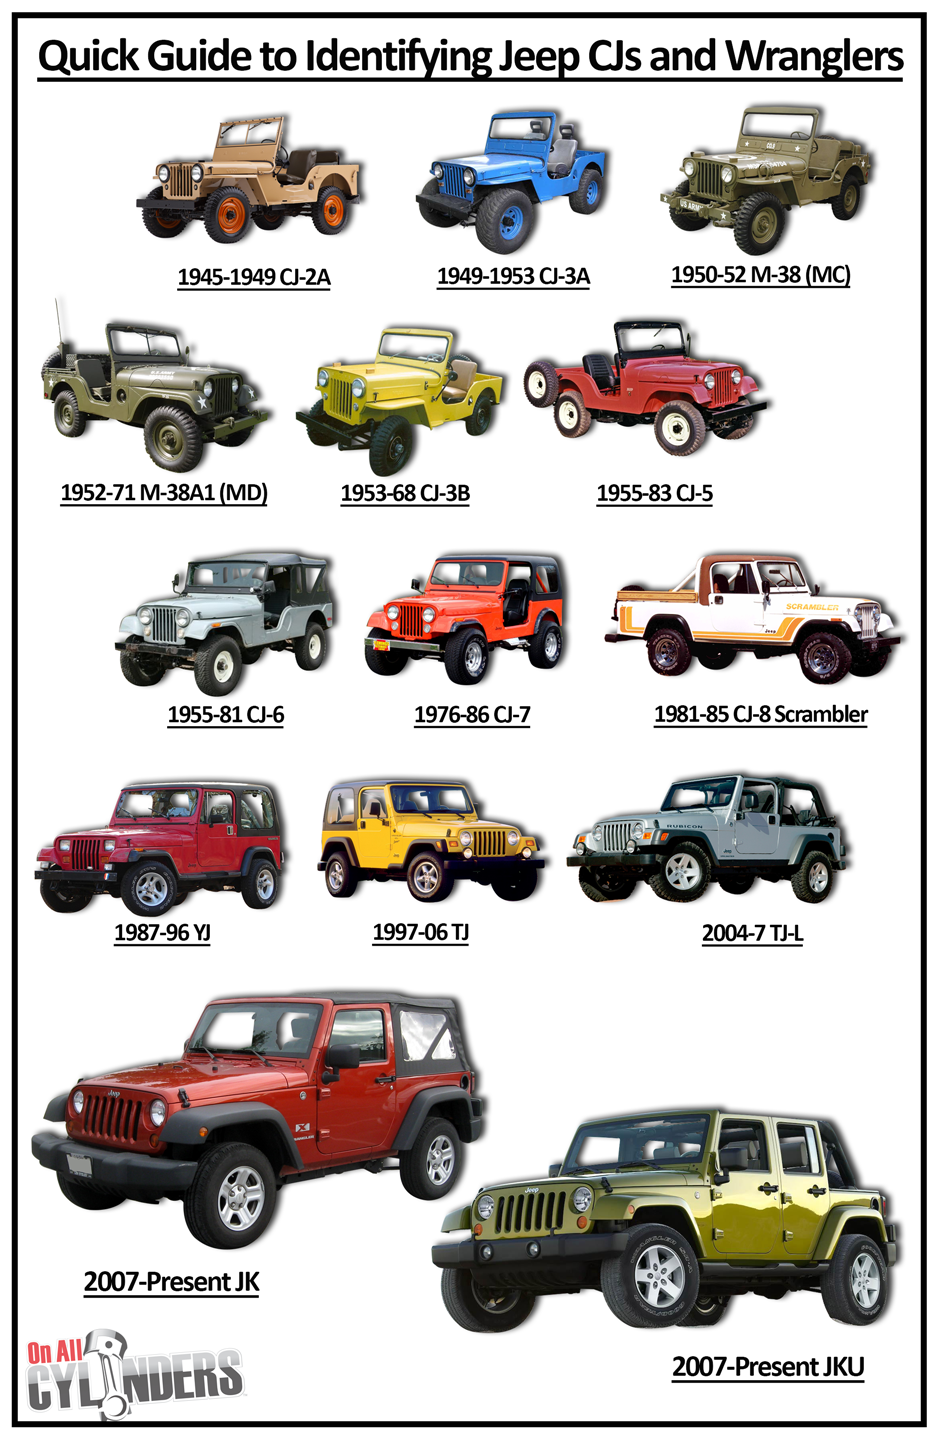 ride guides a quick guide to identifying jeep cjs and wranglers onallcylinders. Black Bedroom Furniture Sets. Home Design Ideas